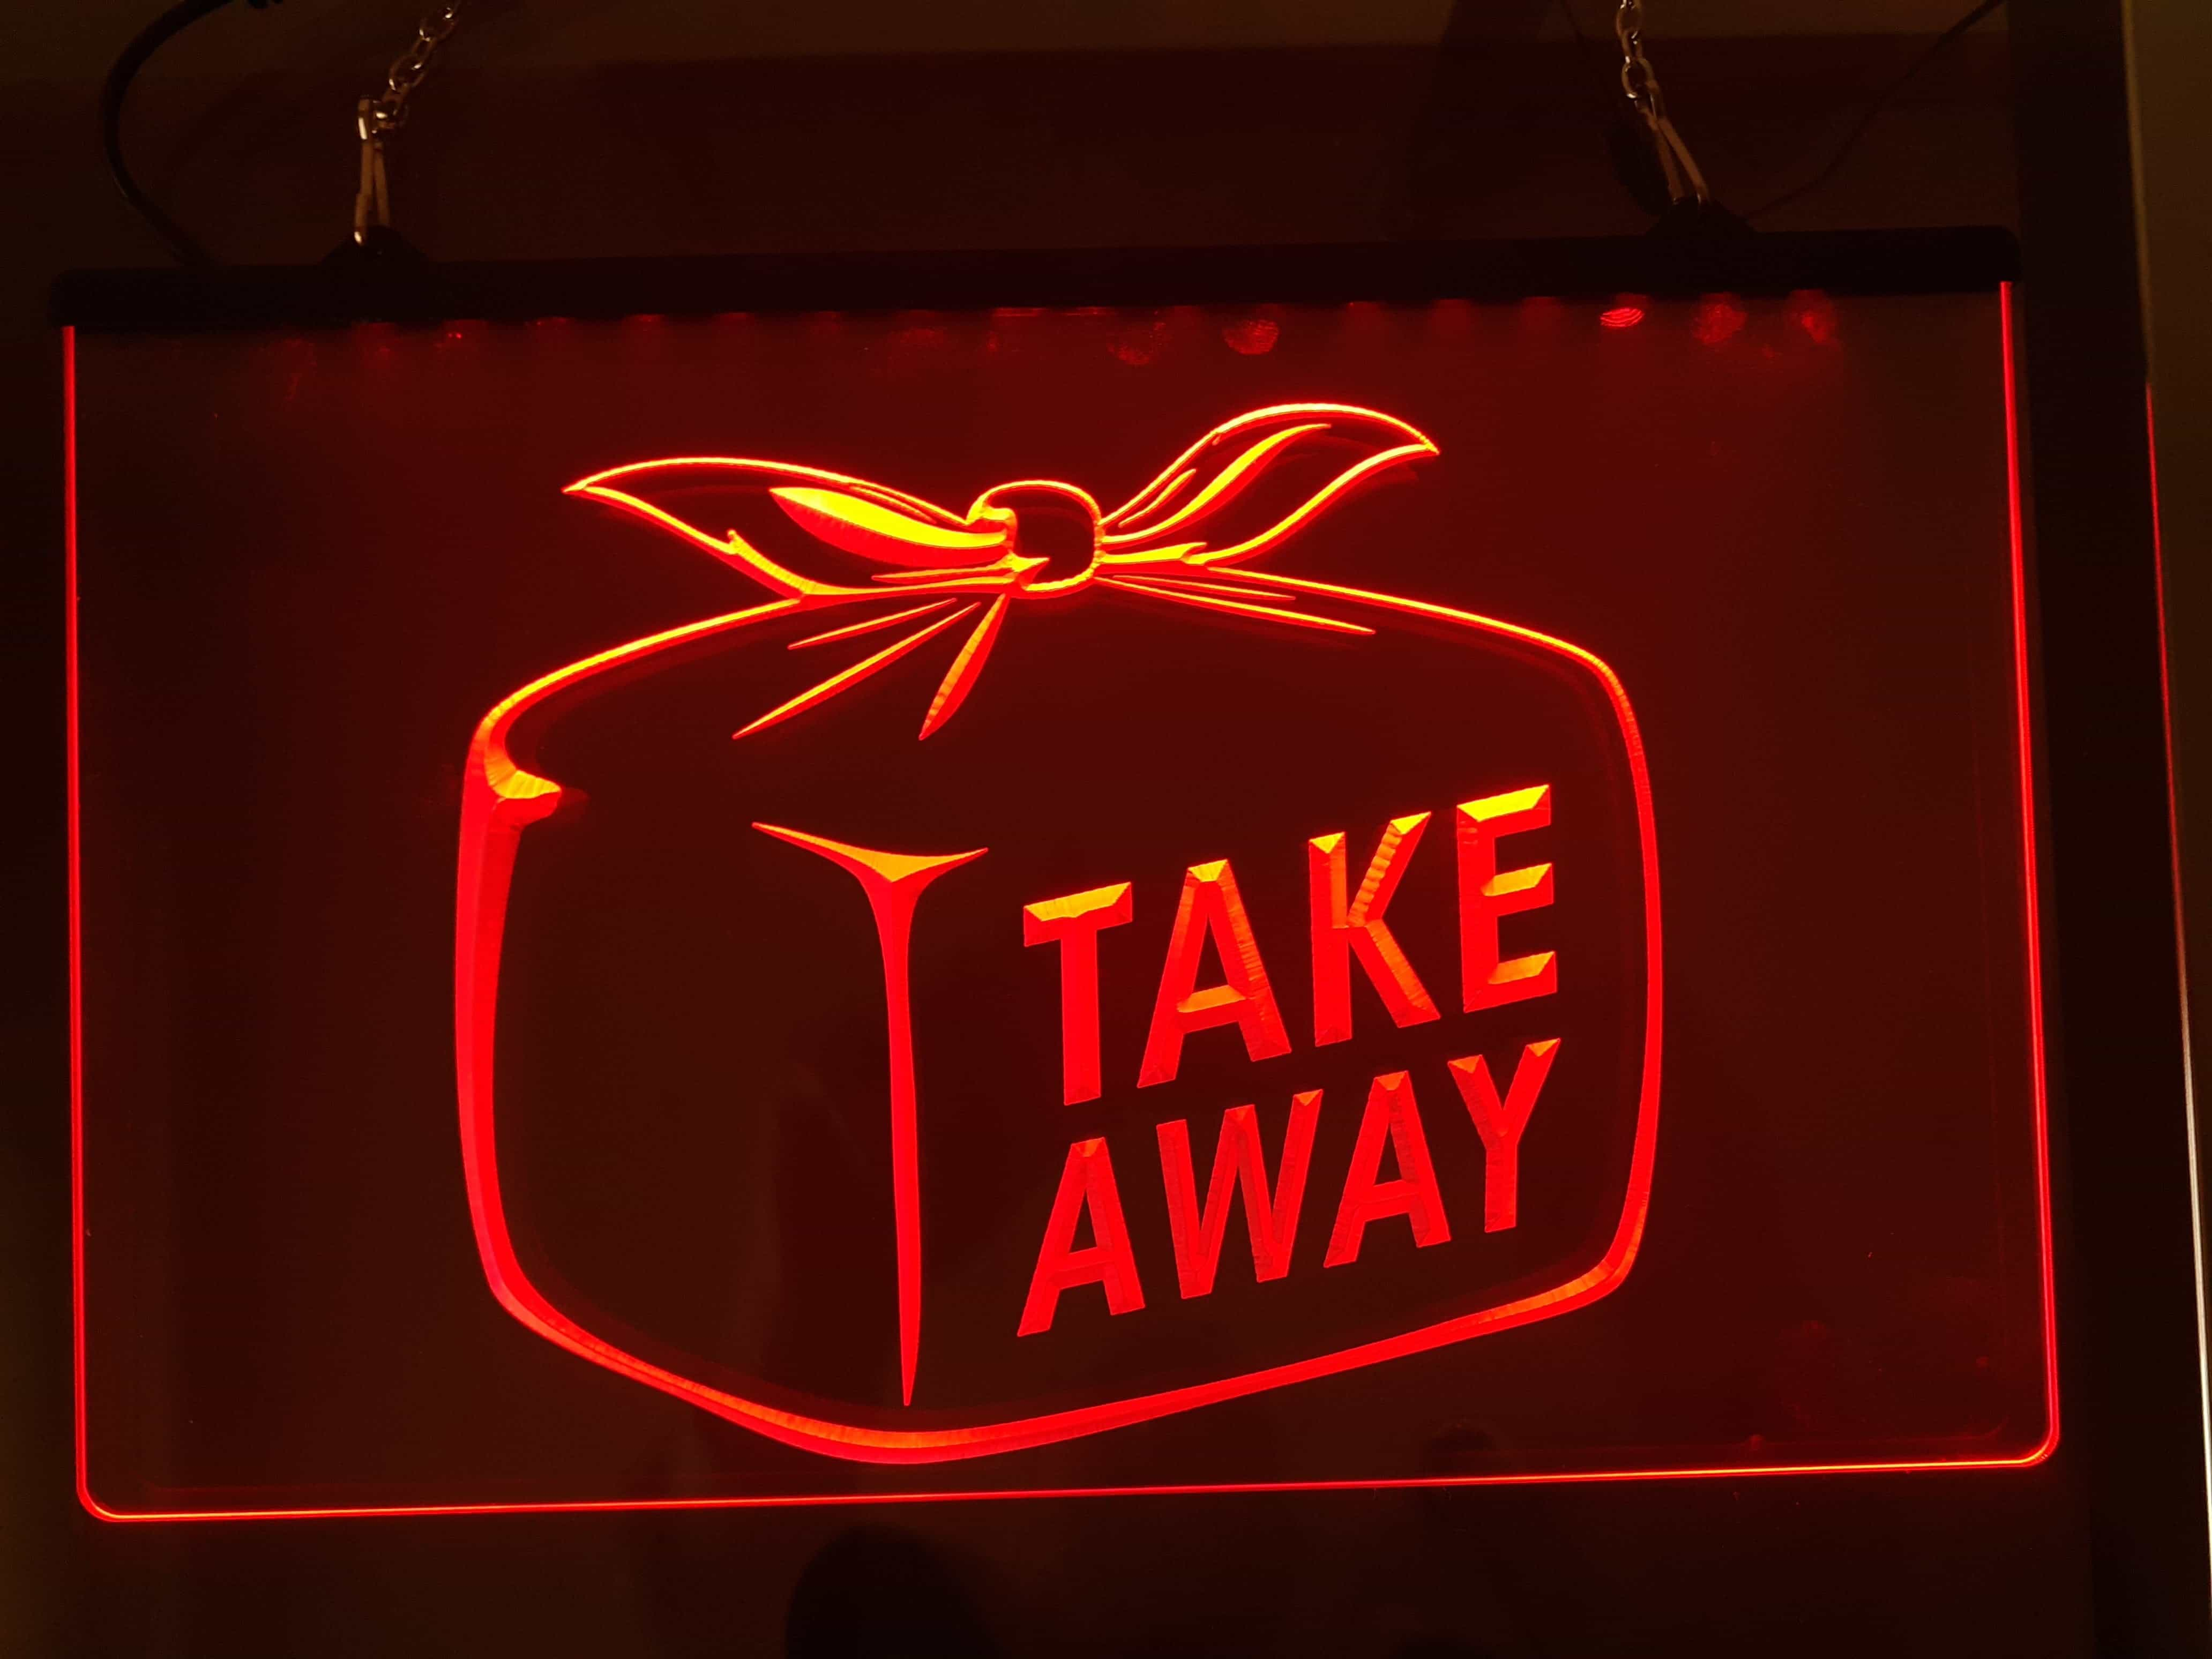 Neon 3D LED Leucht-Schild TAKE AWAY, Leuchtreklame